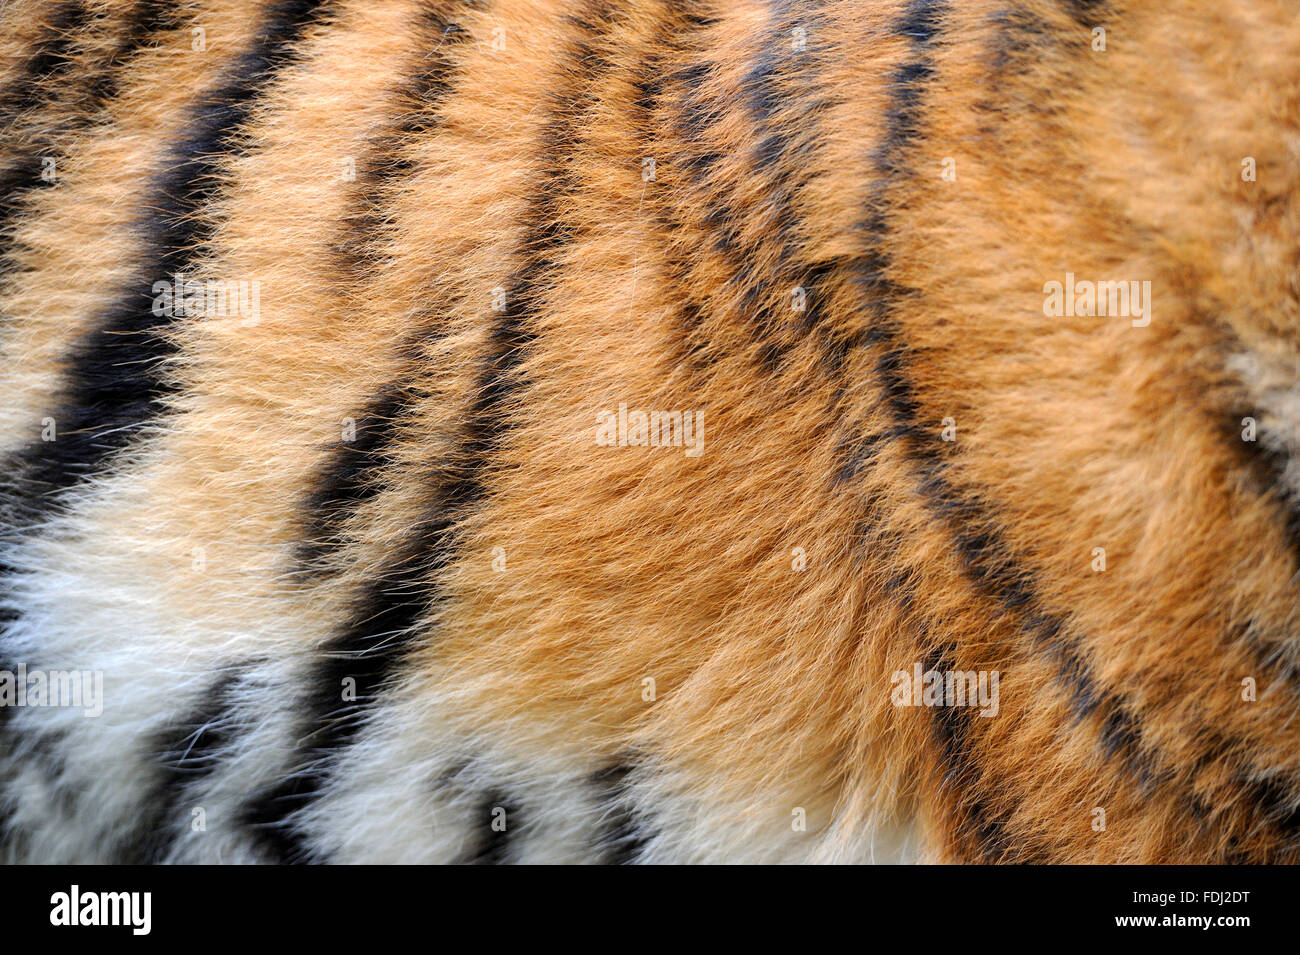 Close-up texture of real tiger skin - Stock Image